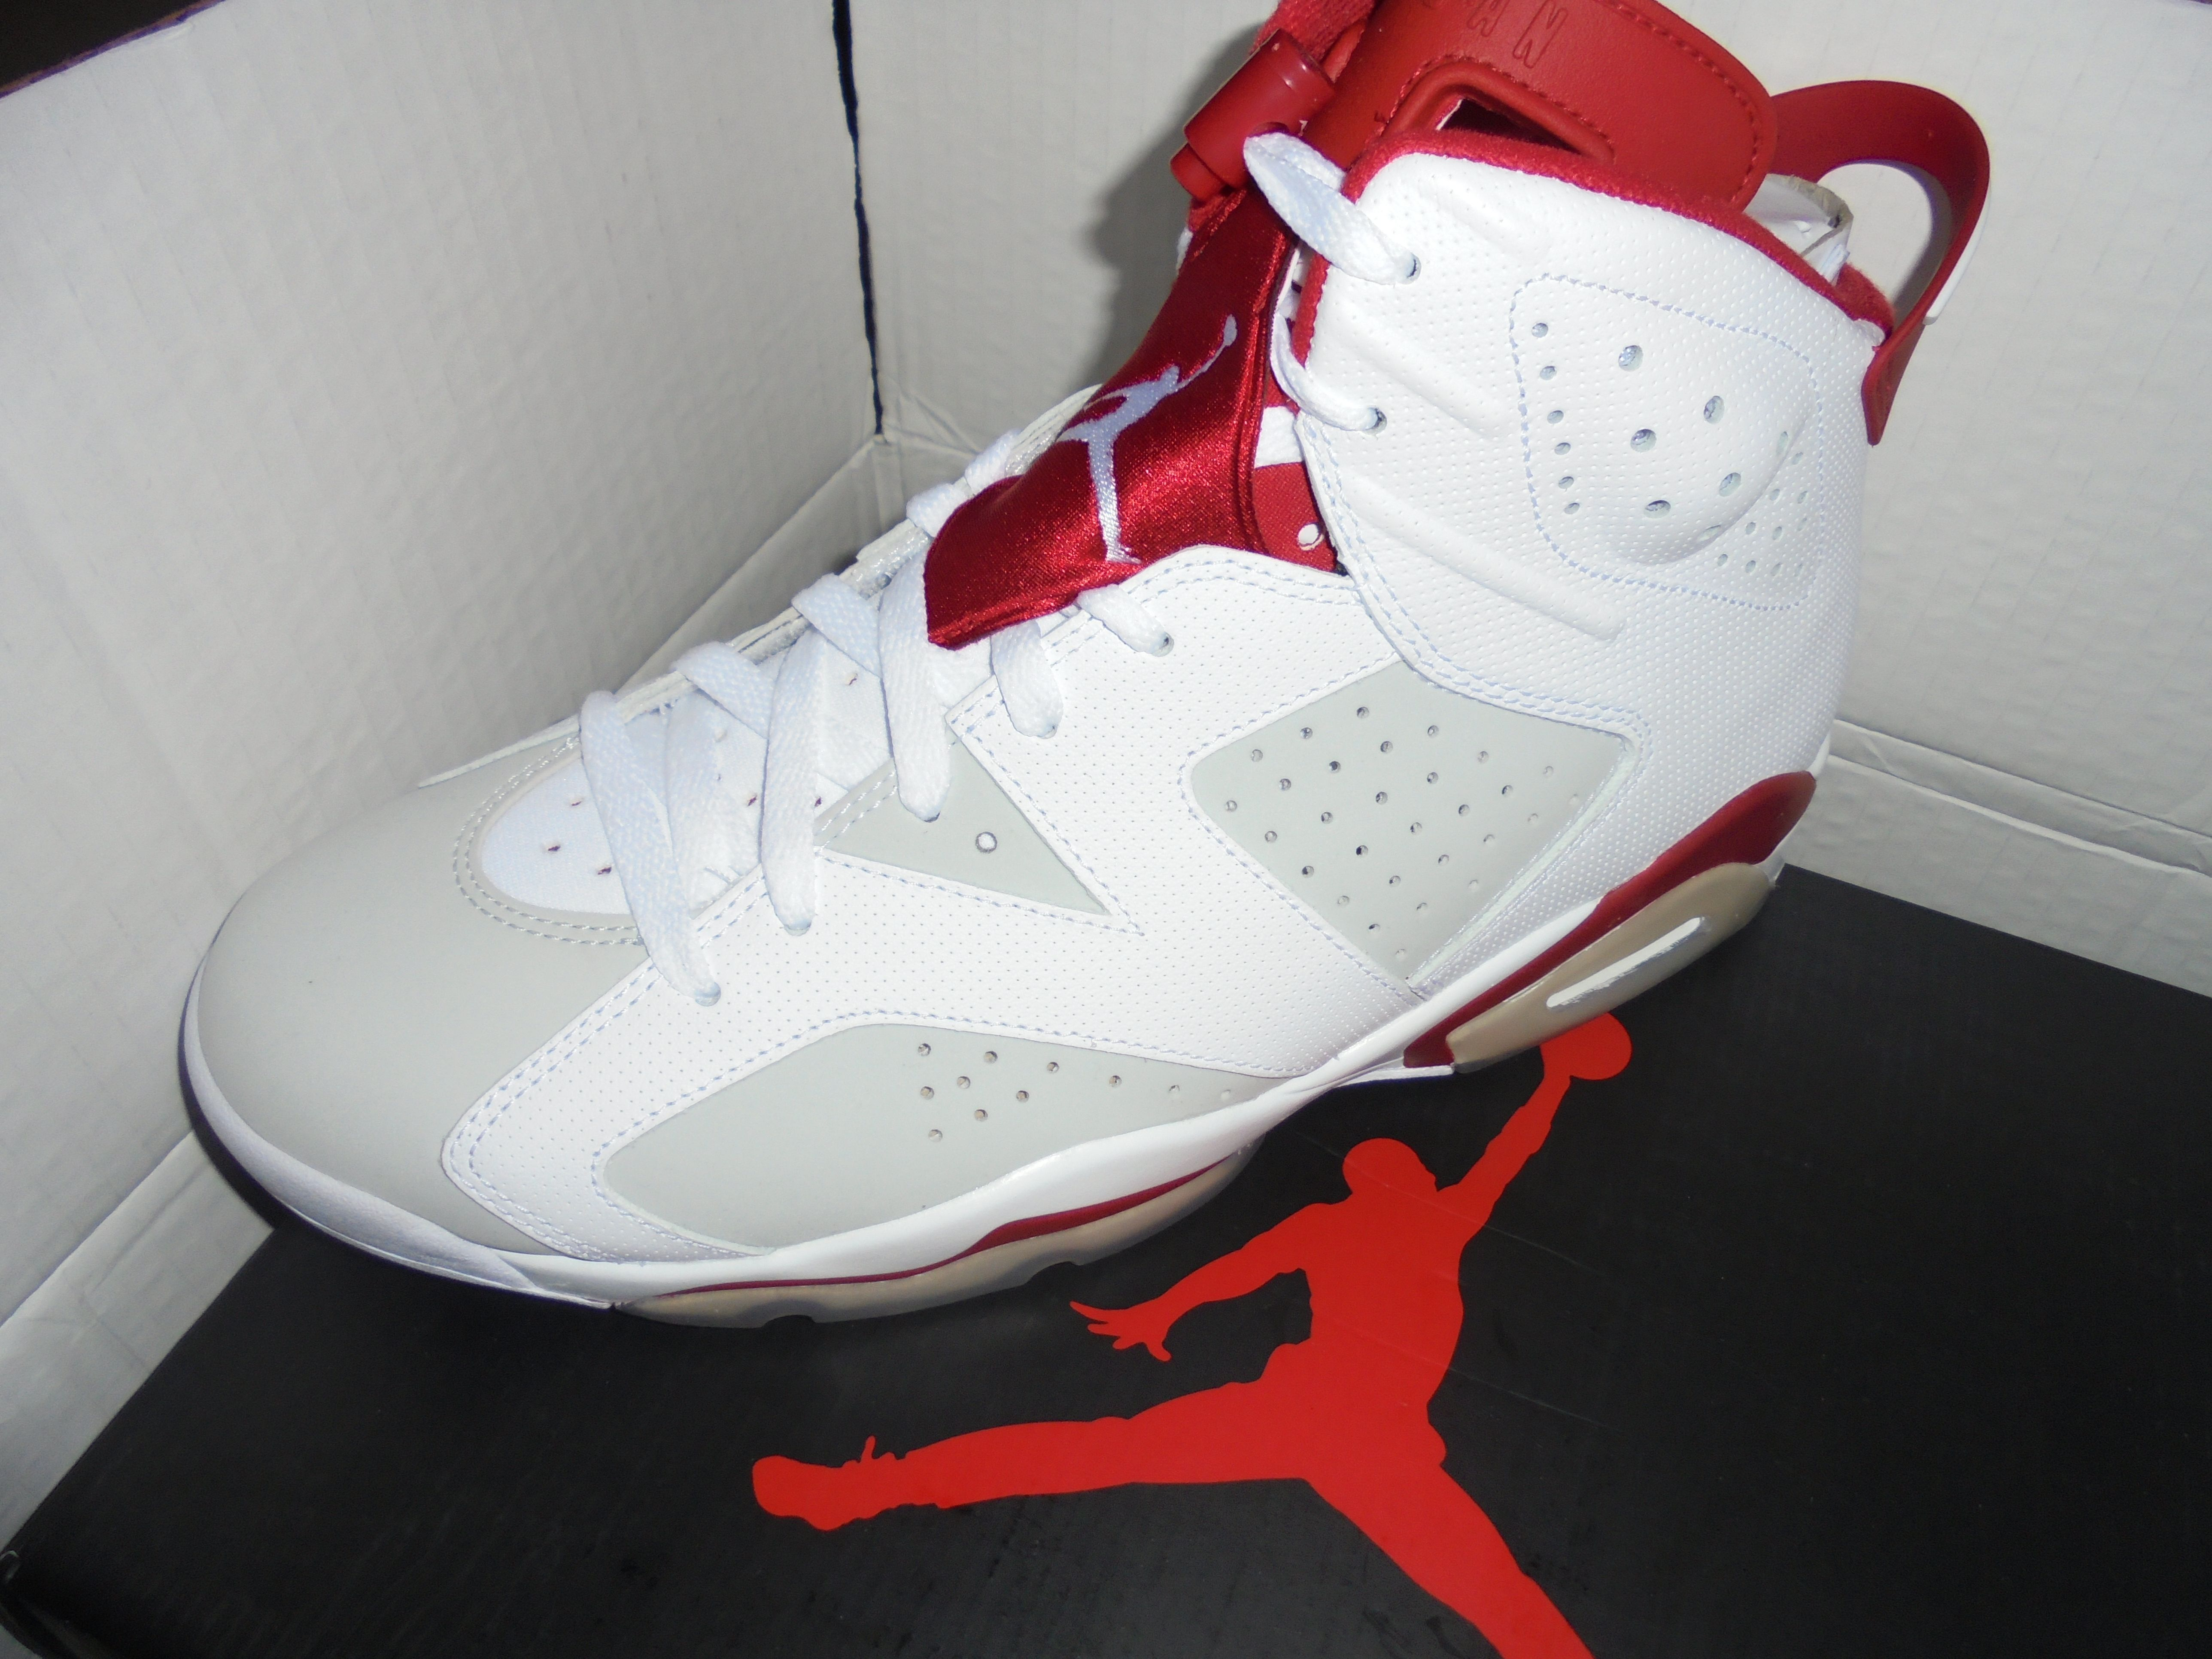 #LeftFoot of #AirJordan #Retro6MichaelJordan by #Nike - http://www.drewrynewsnetwork.com